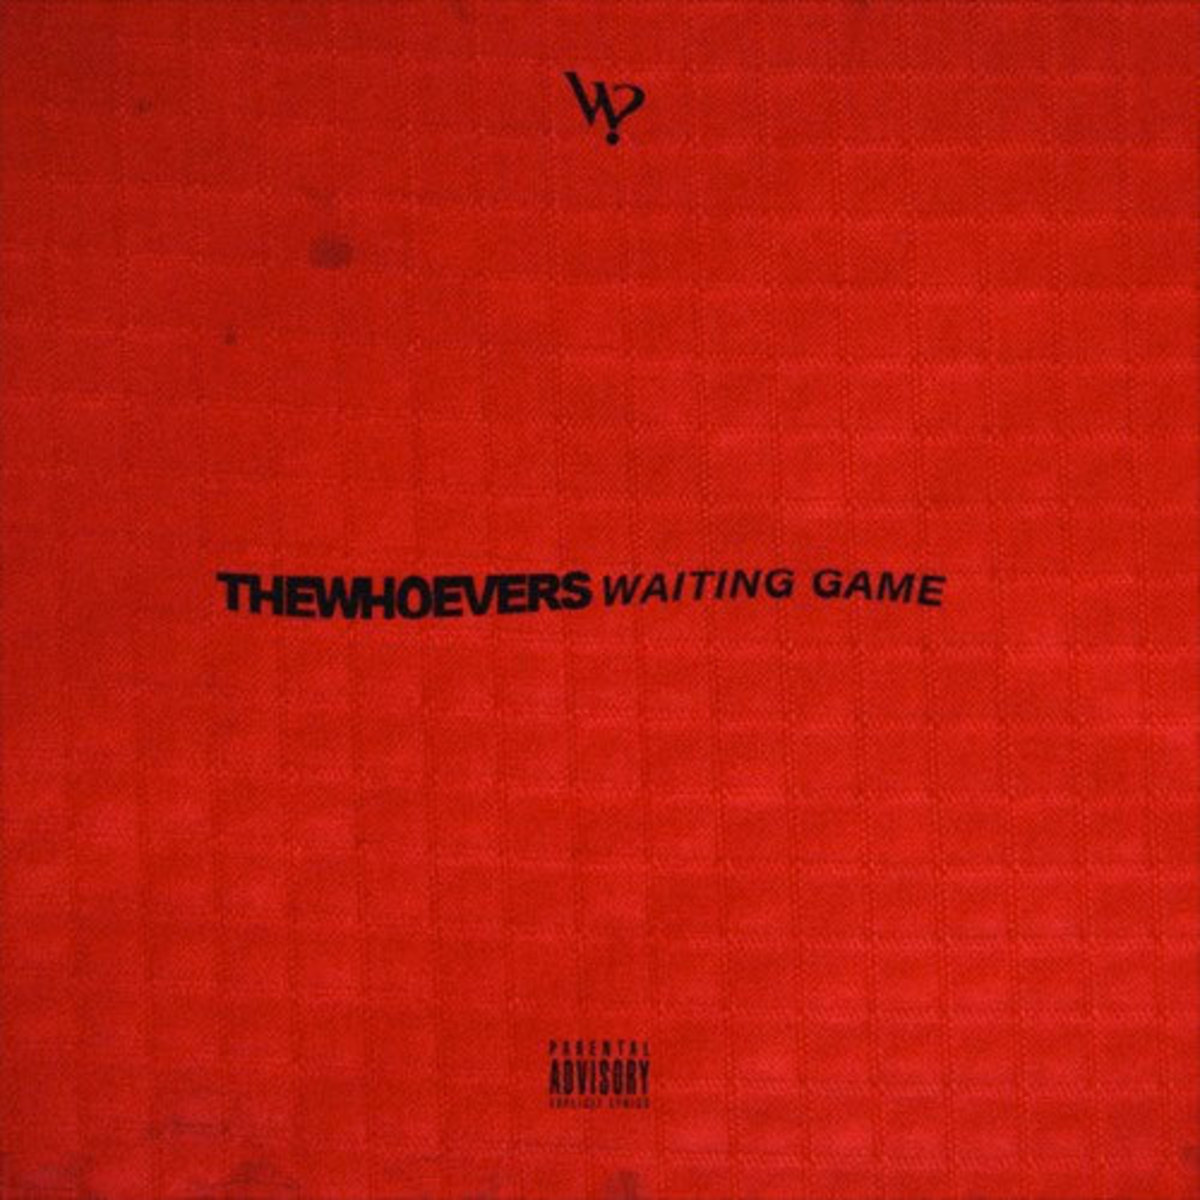 thewhoevers-waiting-game.jpg